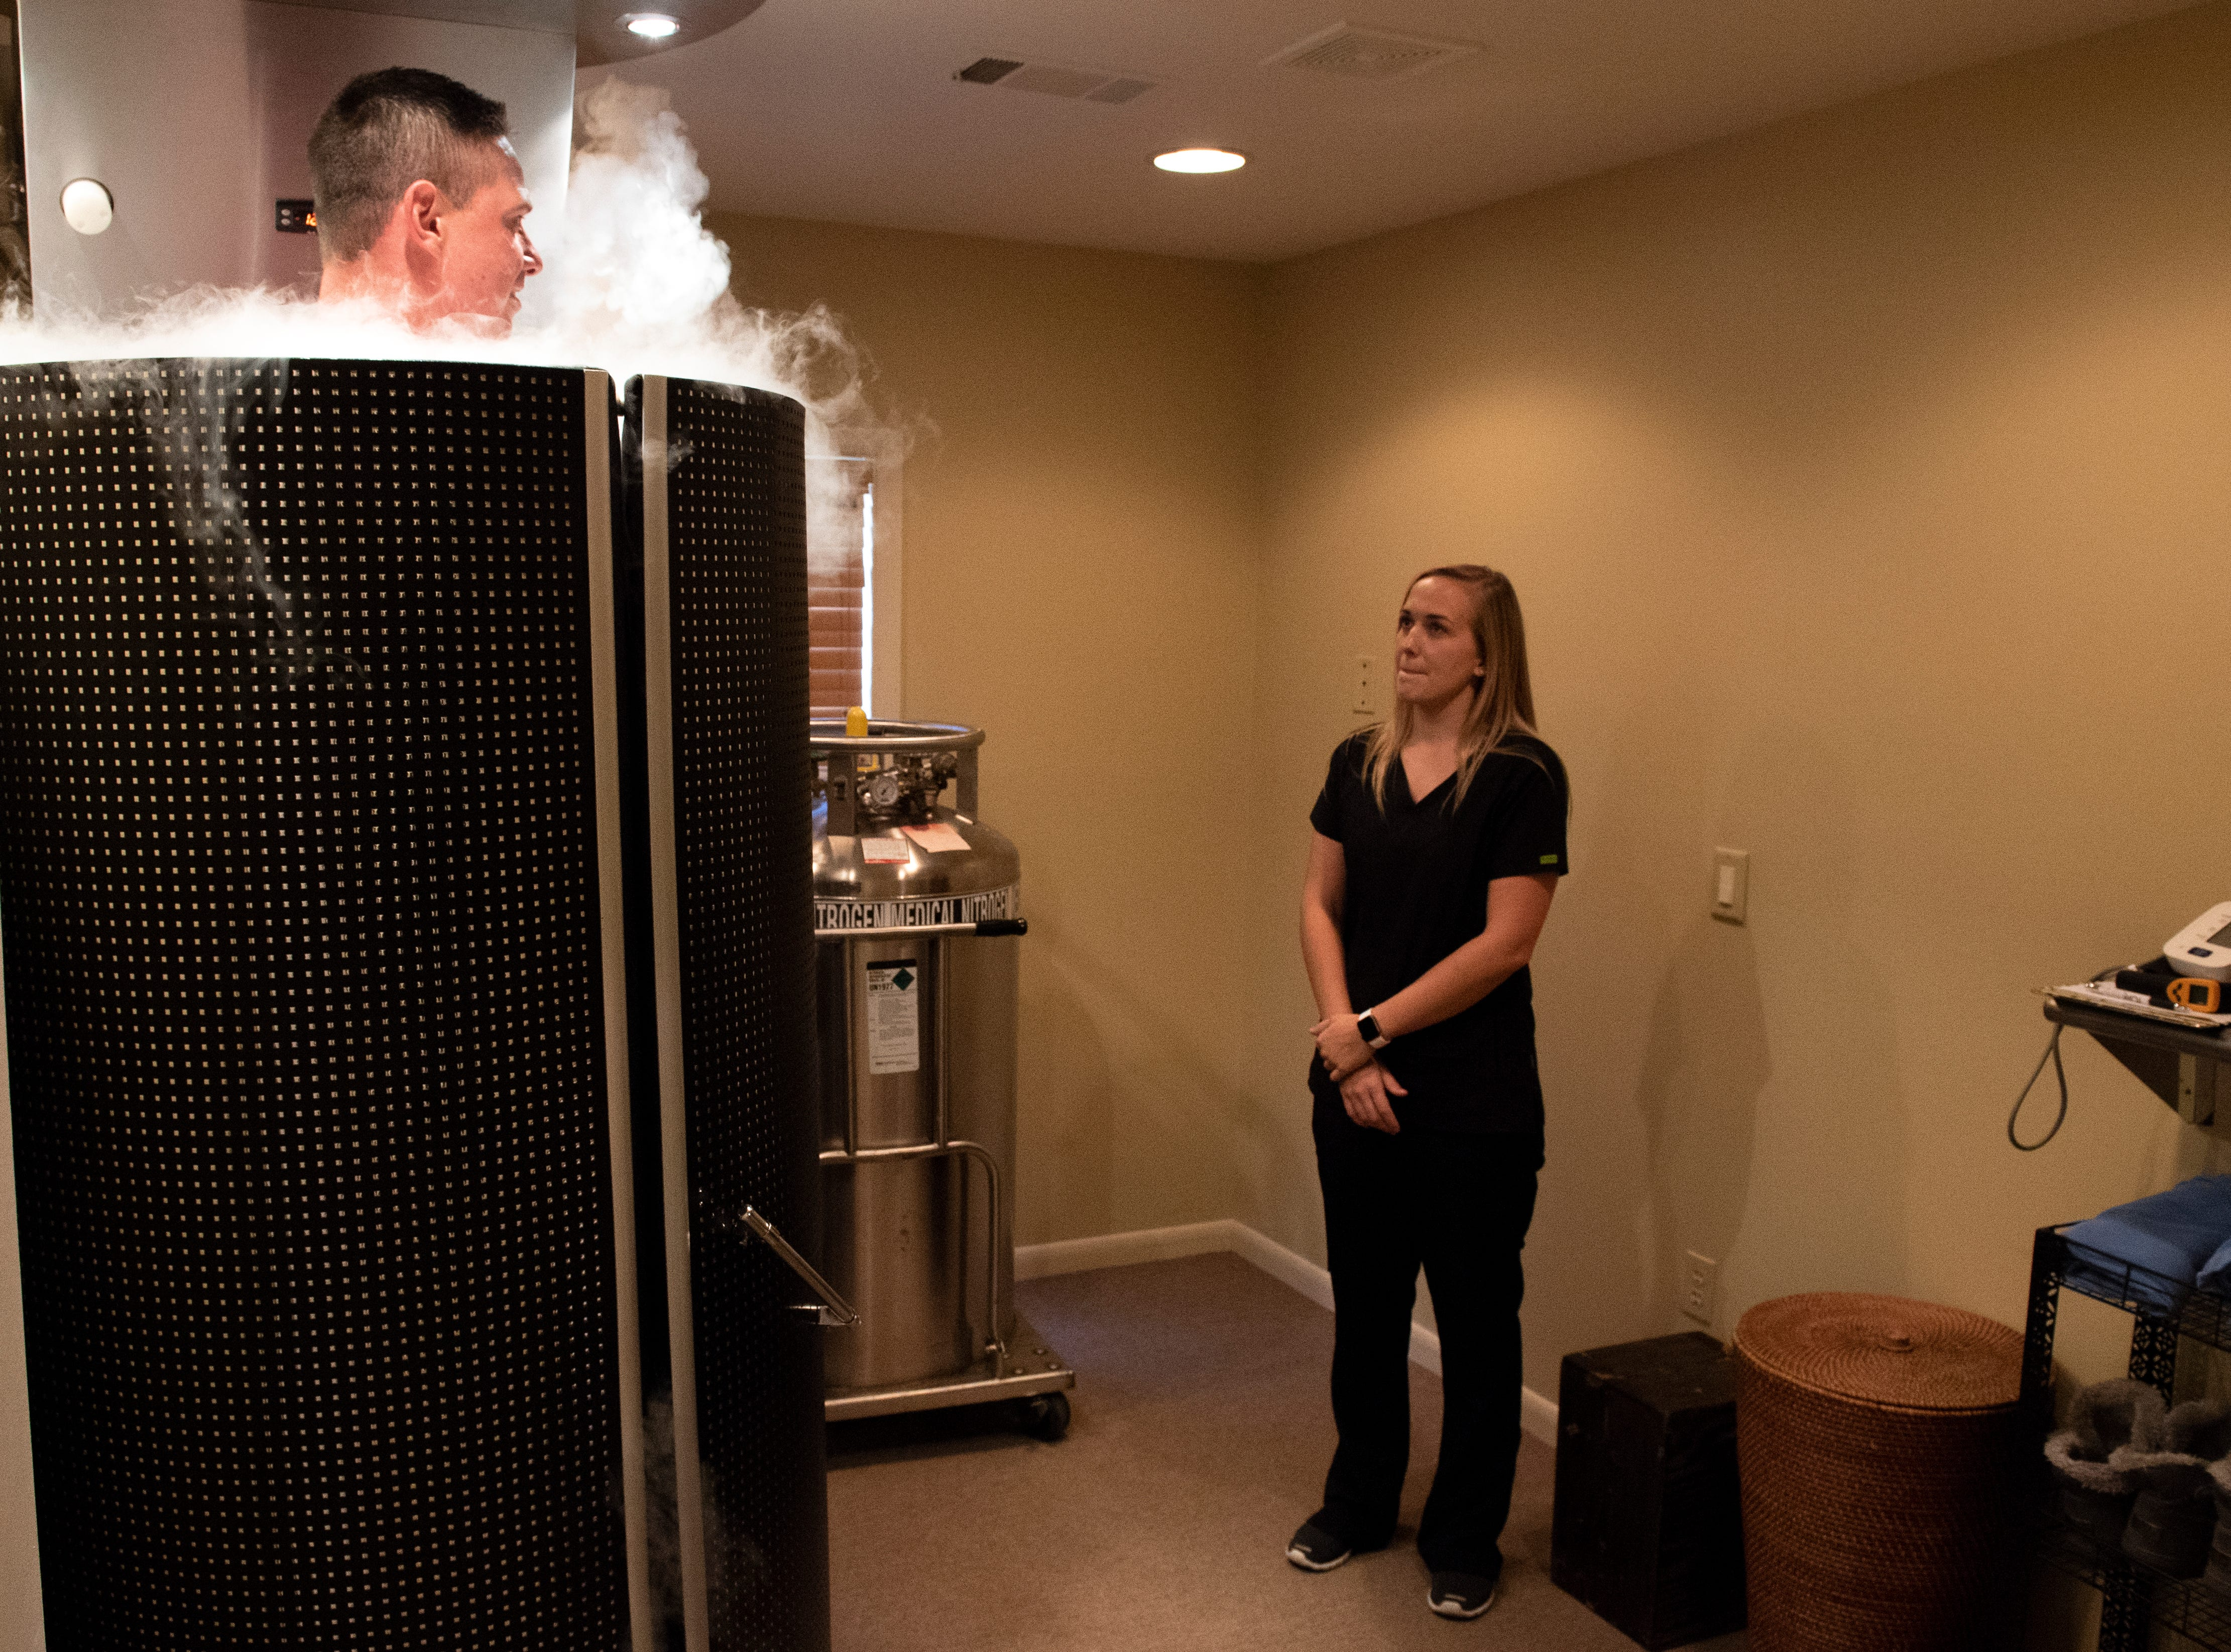 Cryotherapy technician Alison Shreiner, right, speaks with YDR reporter John Buffone while he tries out the cryotherapy chamber, Tuesday, Aug. 27, 2018. Cryotherapy is a treatment using liquid nitrogen gas in an enclosed chamber to surround a patientÕs body with freezing temperatures.